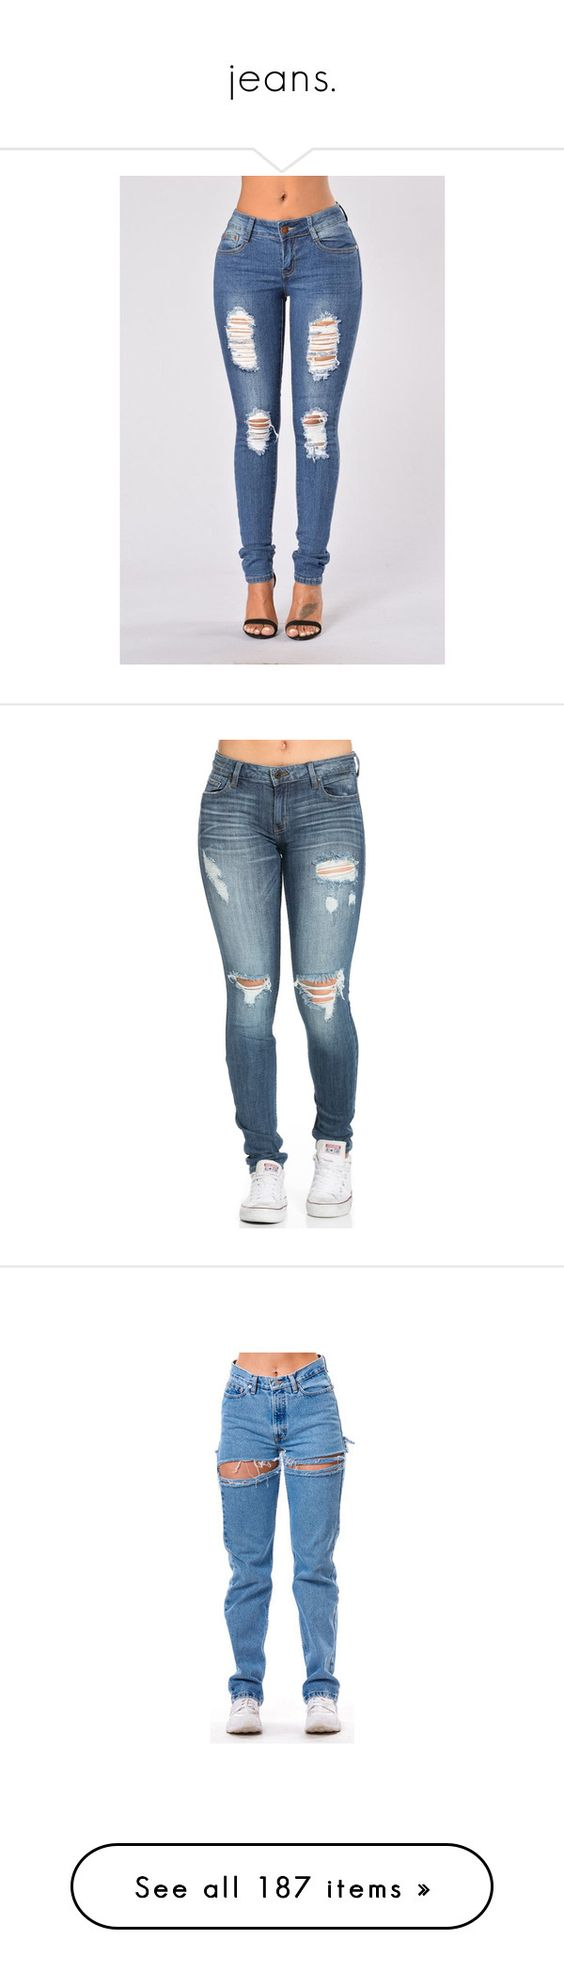 """""""jeans."""" by yeauxbriana ❤ liked on Polyvore featuring jeans, bottoms, skinny jeans, distressed skinny jeans, torn jeans, distressed jeans, destroyed jeans, pants, folded jeans and denim jeans"""